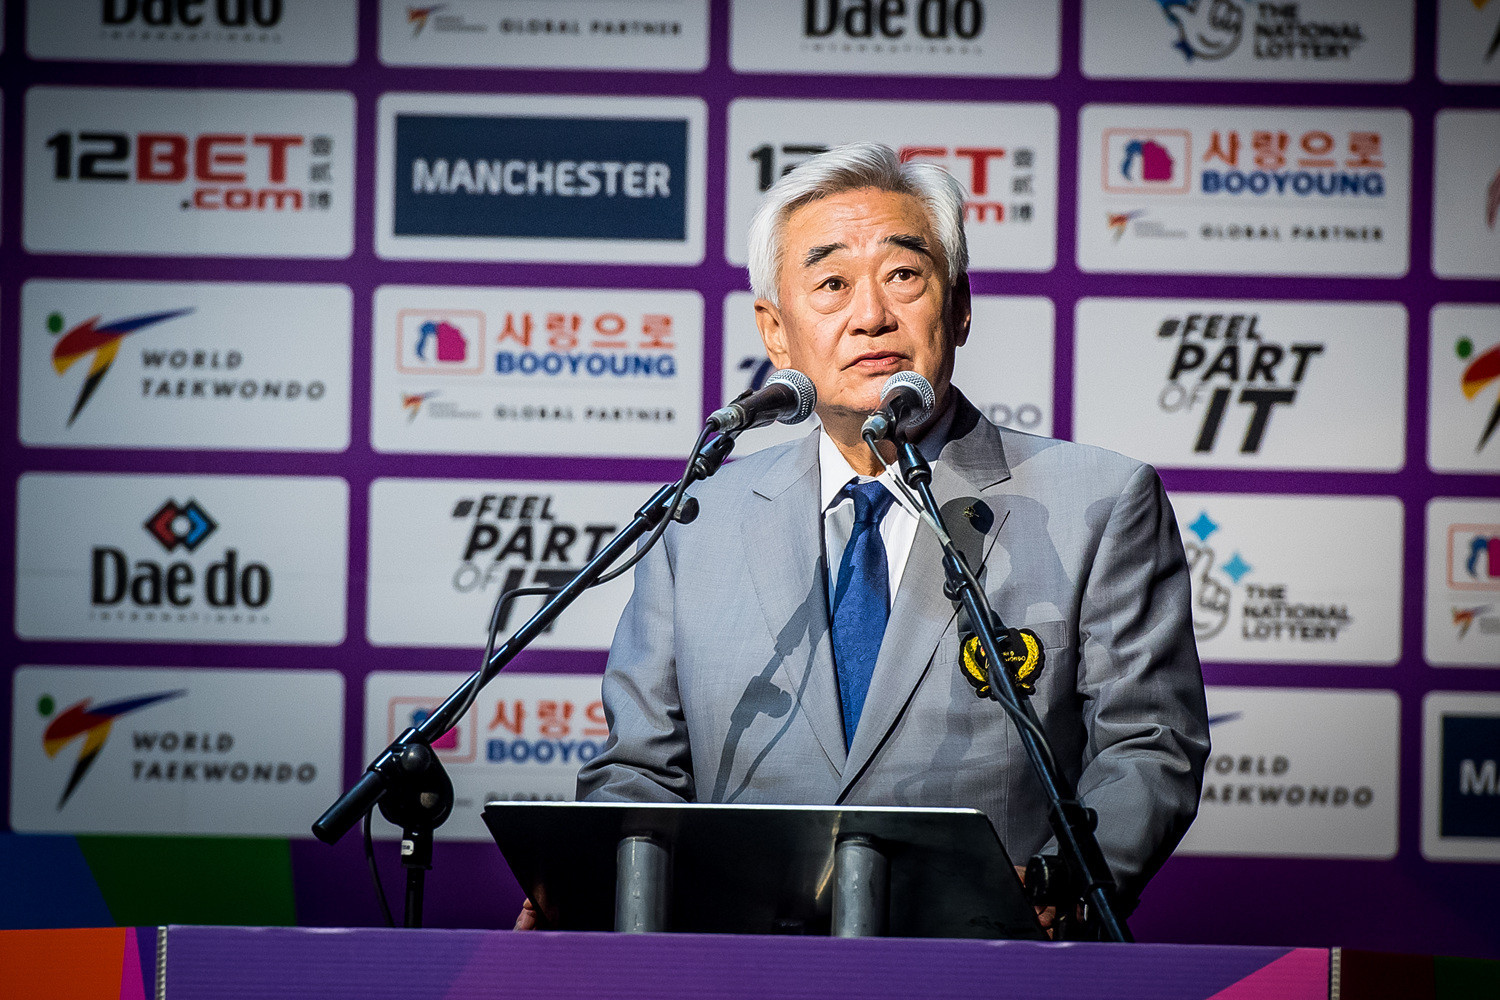 World Taekwondo President Choue Chung-won wished the competitors luck in his opening speech ©World Taekwondo